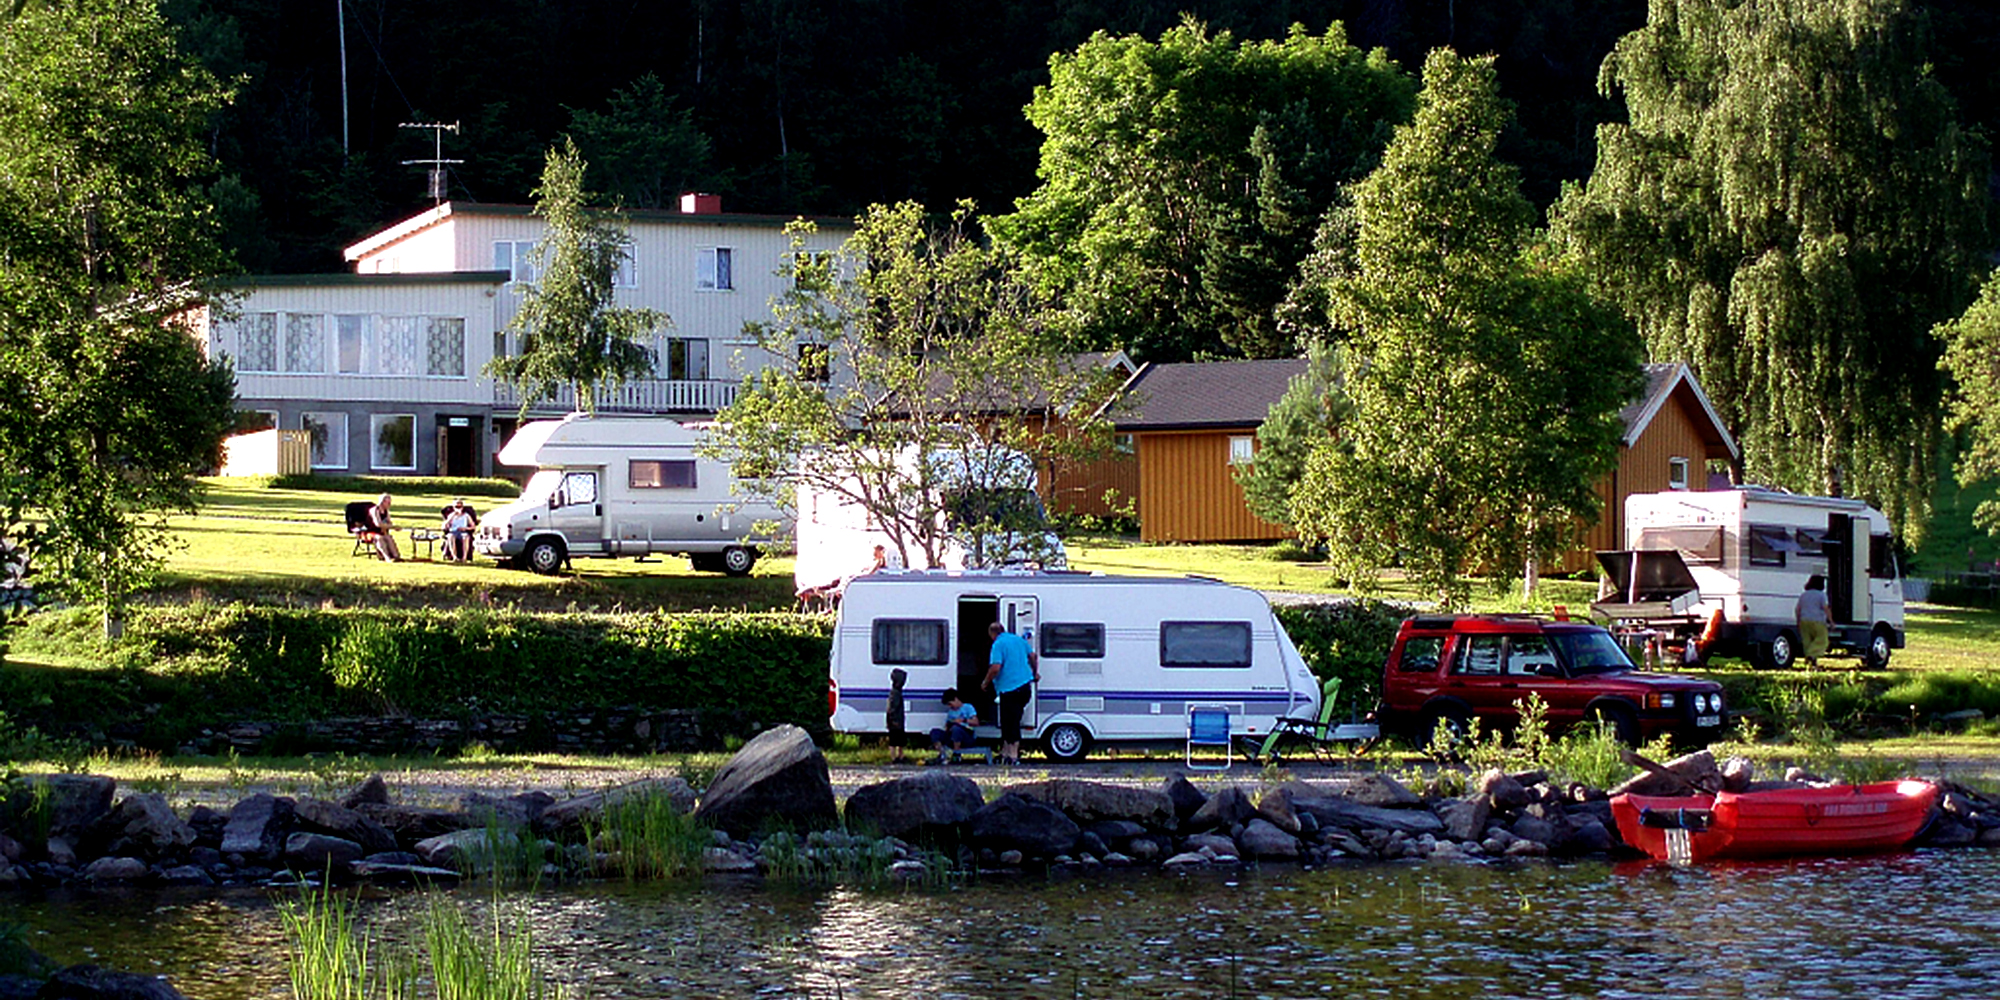 Kvam Motell og Camping - situated on the shores of Snåsavatnet. Copyright: Kvam Motell og Camping